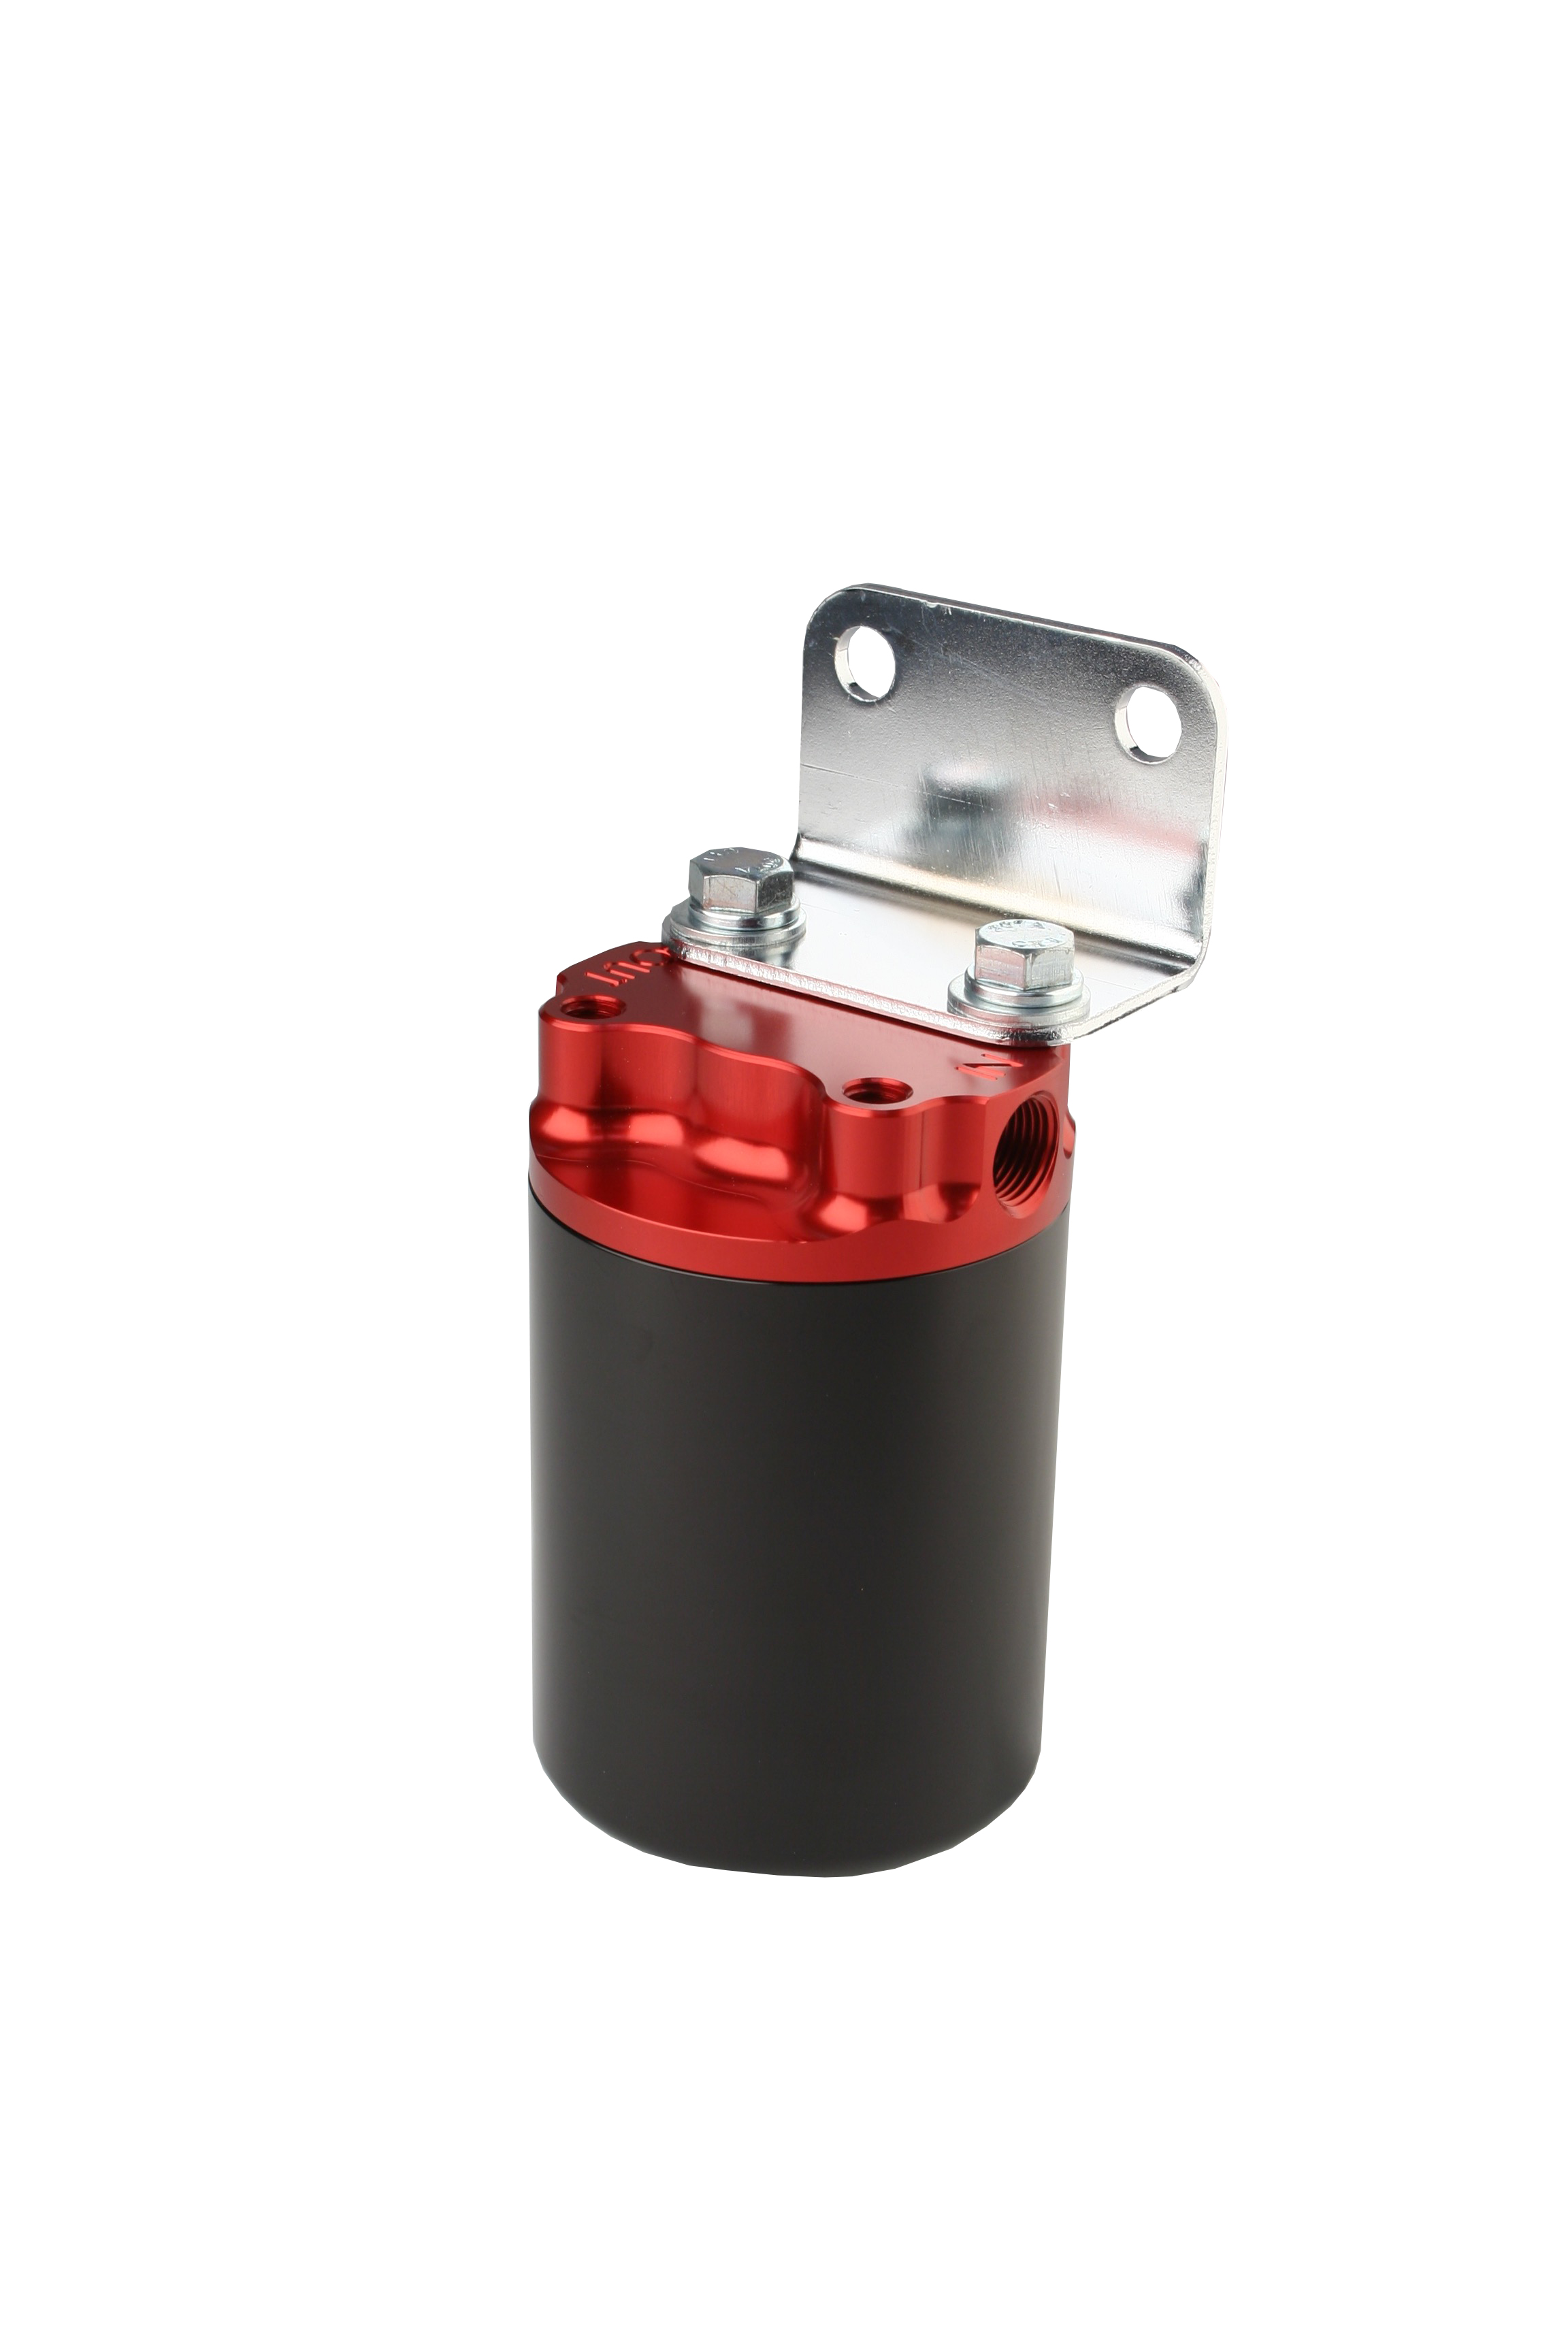 100 Micron Red Black Canister Fuel Filter Aeromotive Inc Replace 2004 Ford Mustang